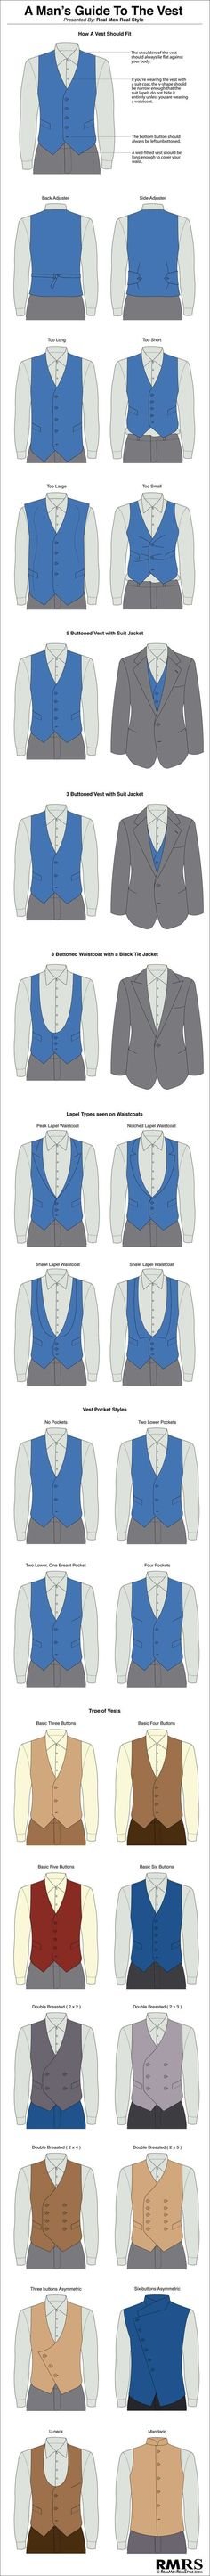 how a vest should fit, men's guide to vest